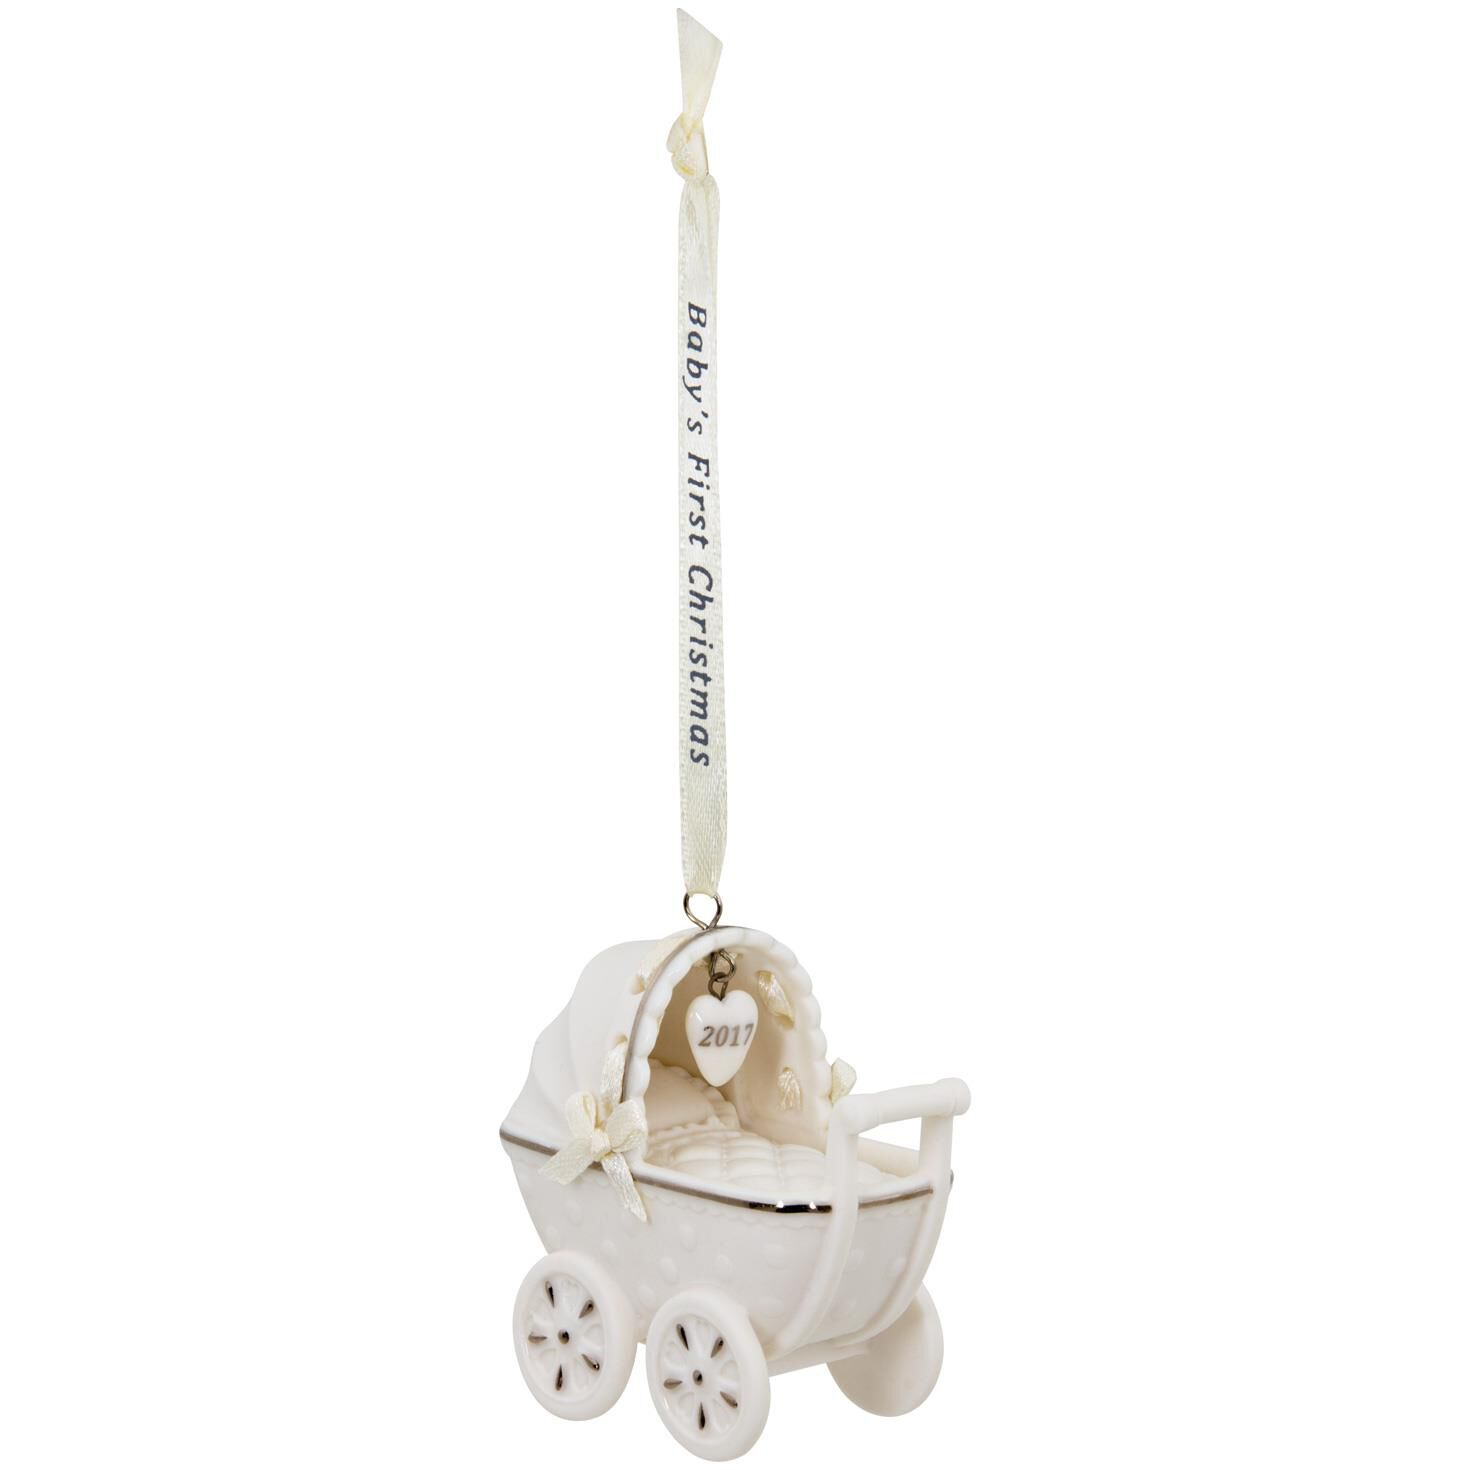 Baby ornament - Baby Ornament 37